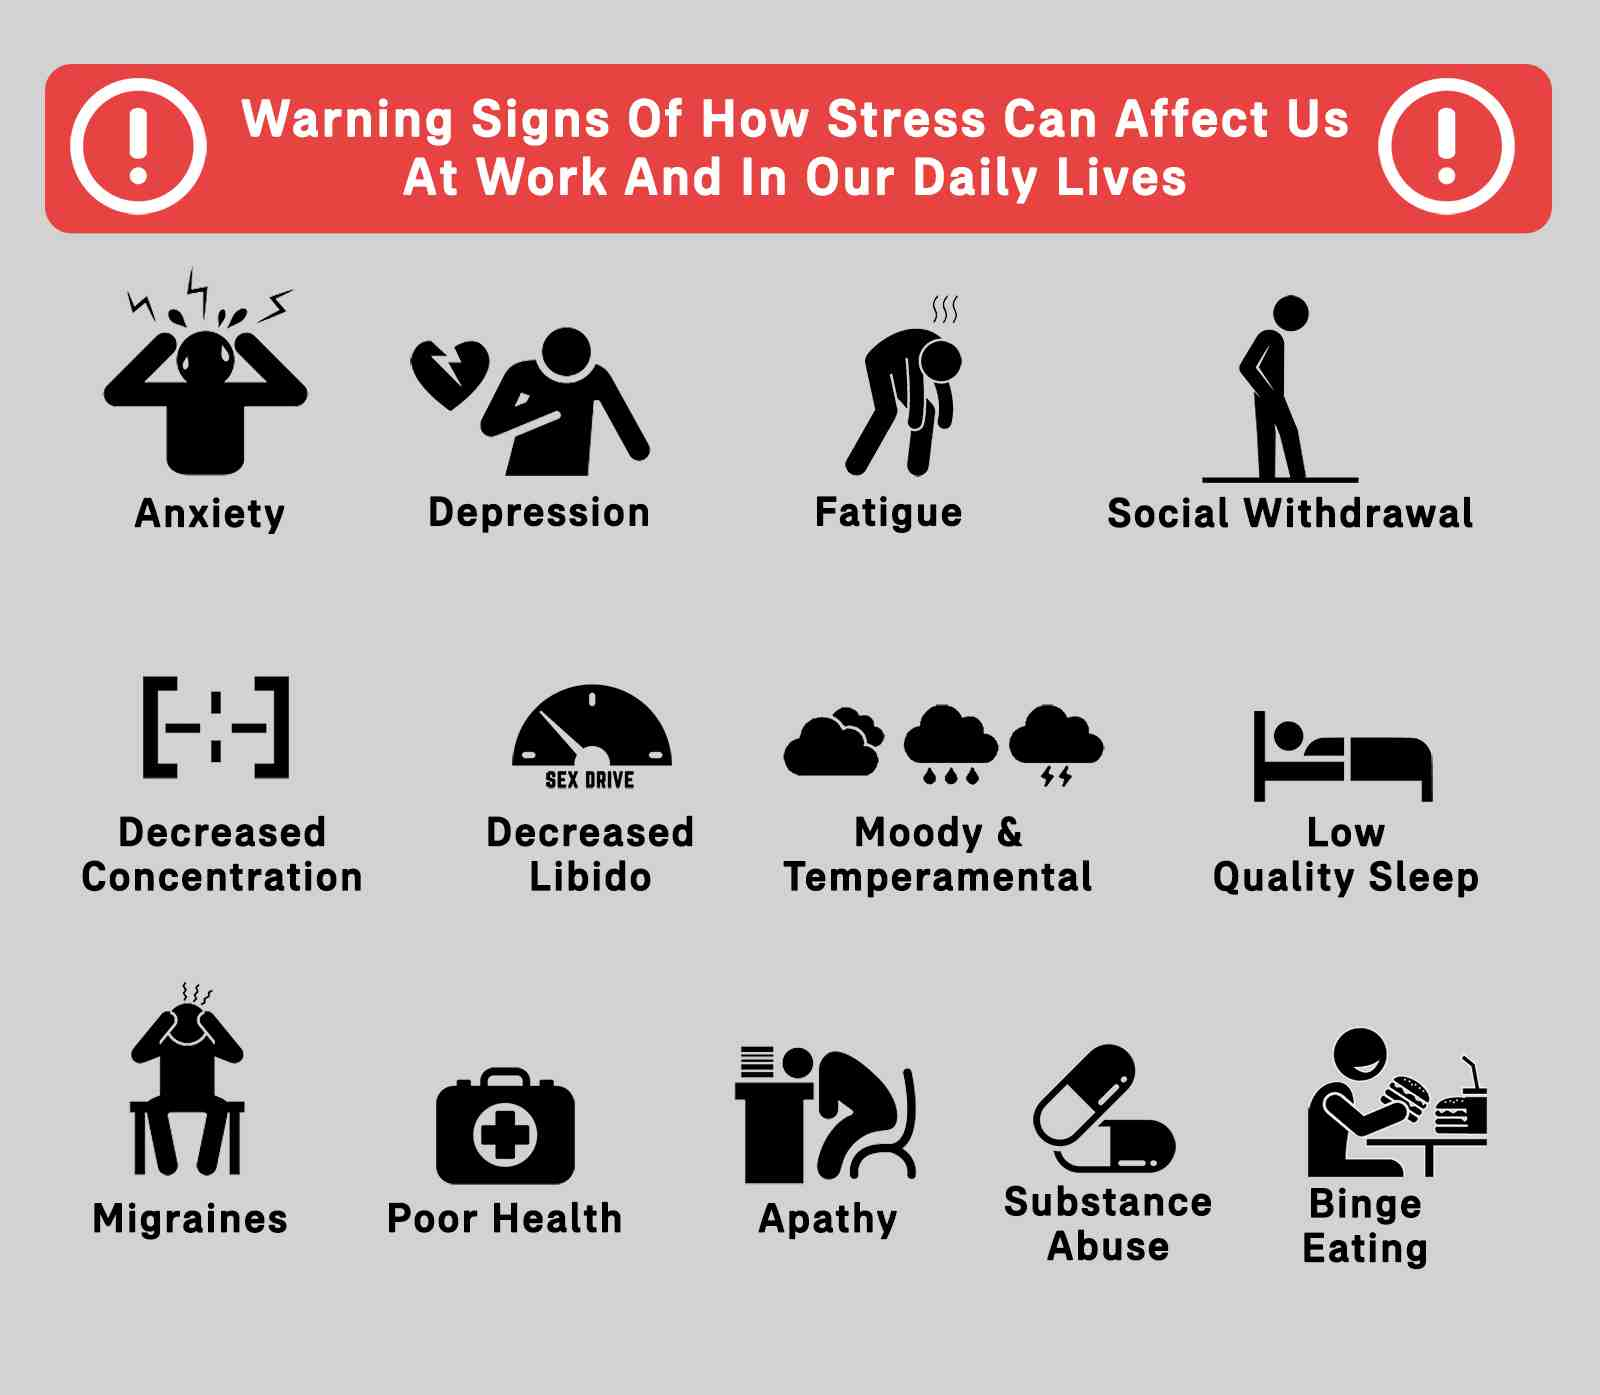 Warning Signs Of How Stress Can Affect Us At Work And In Our Daily Lives